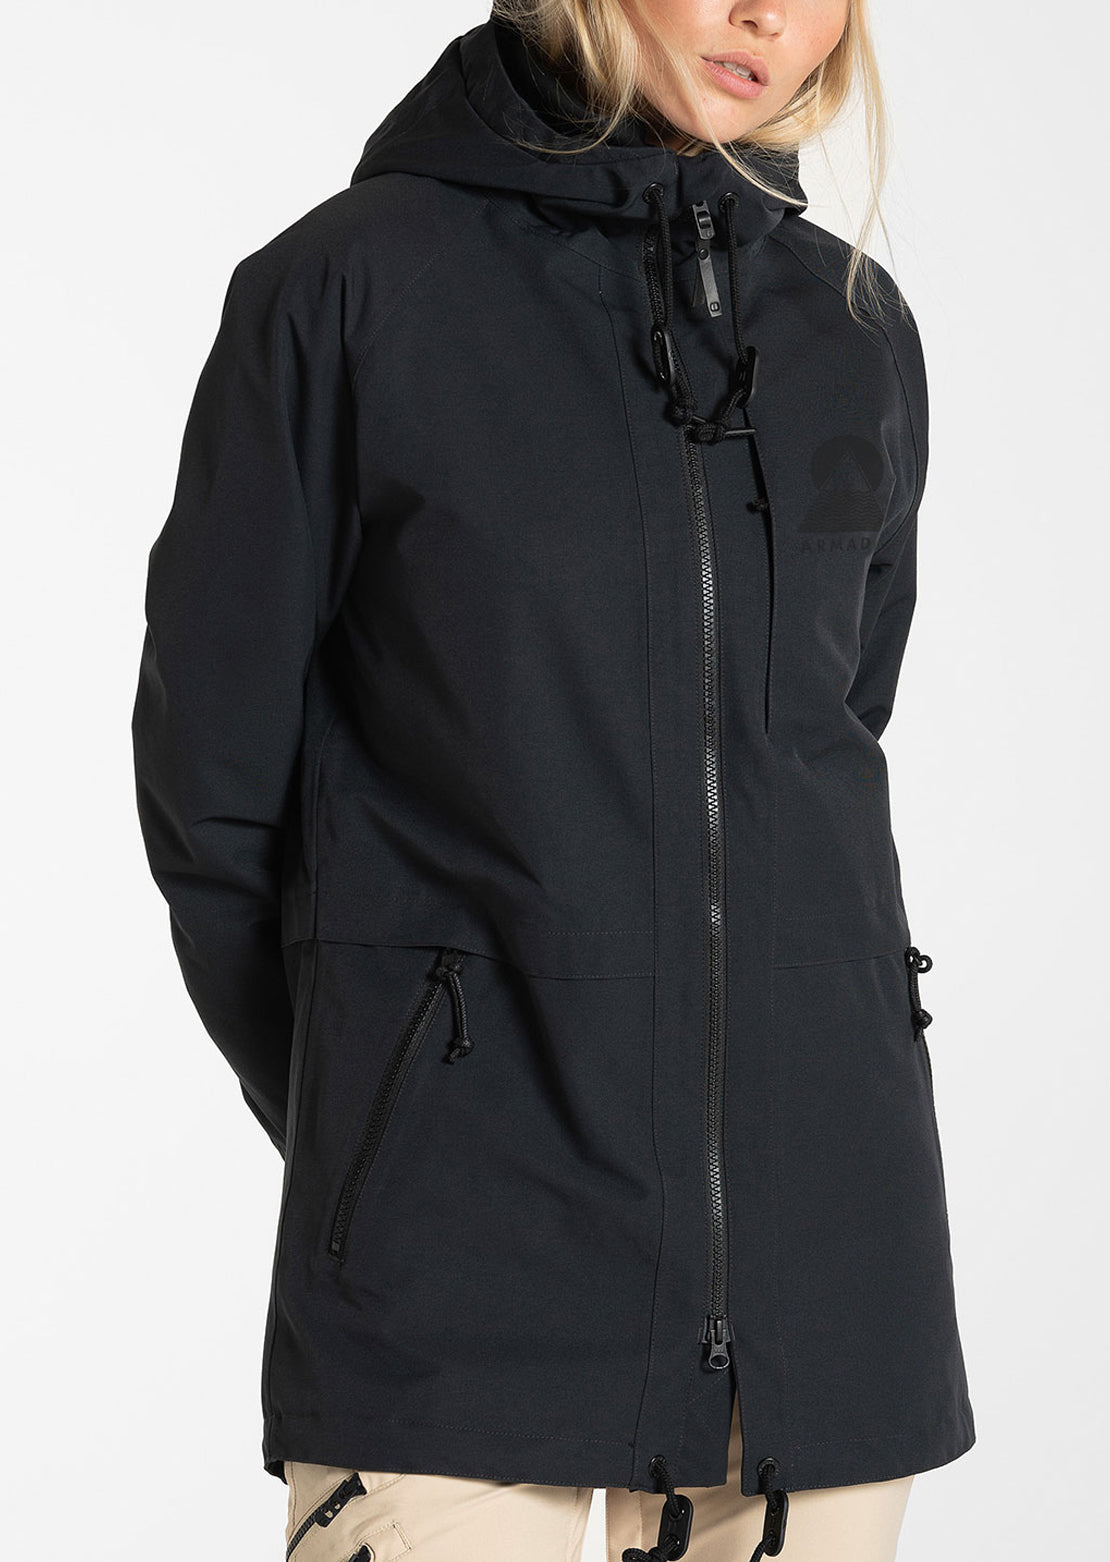 Armada Women's Gypsum Jacket Black